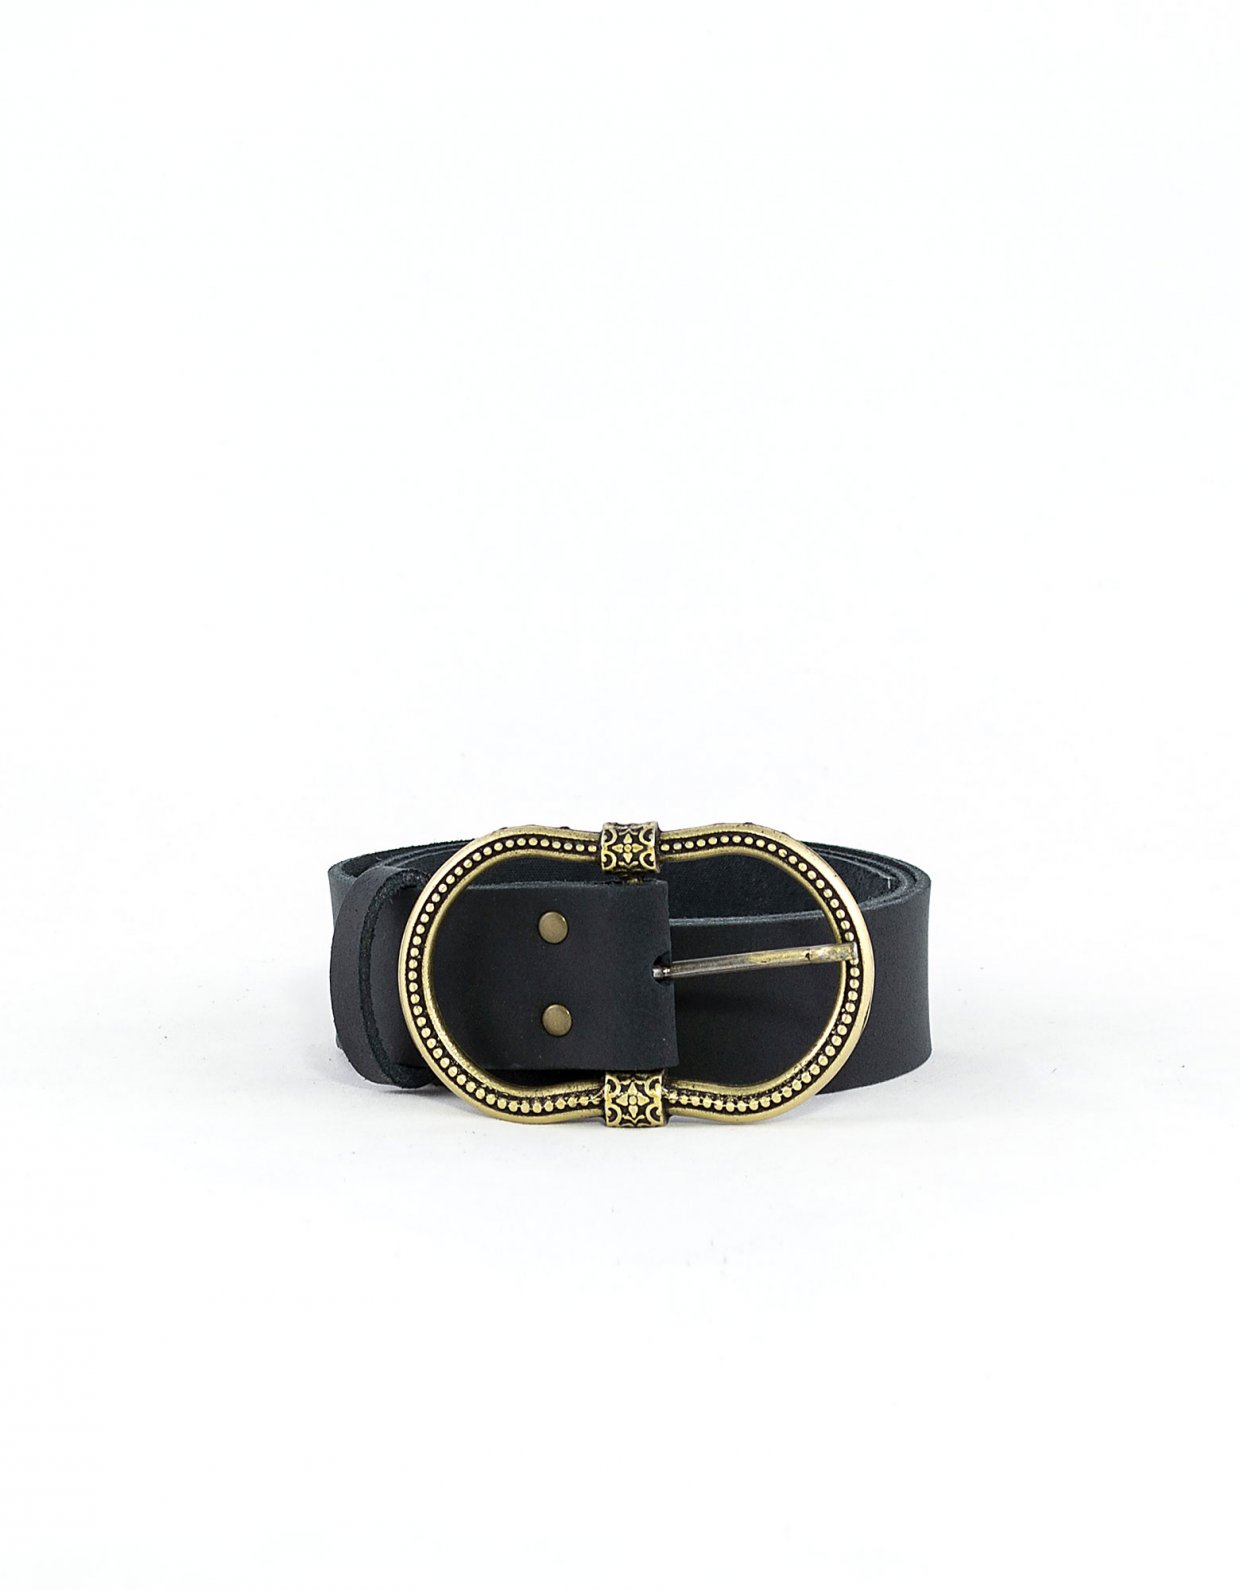 Peace & Chaos Balance belt black